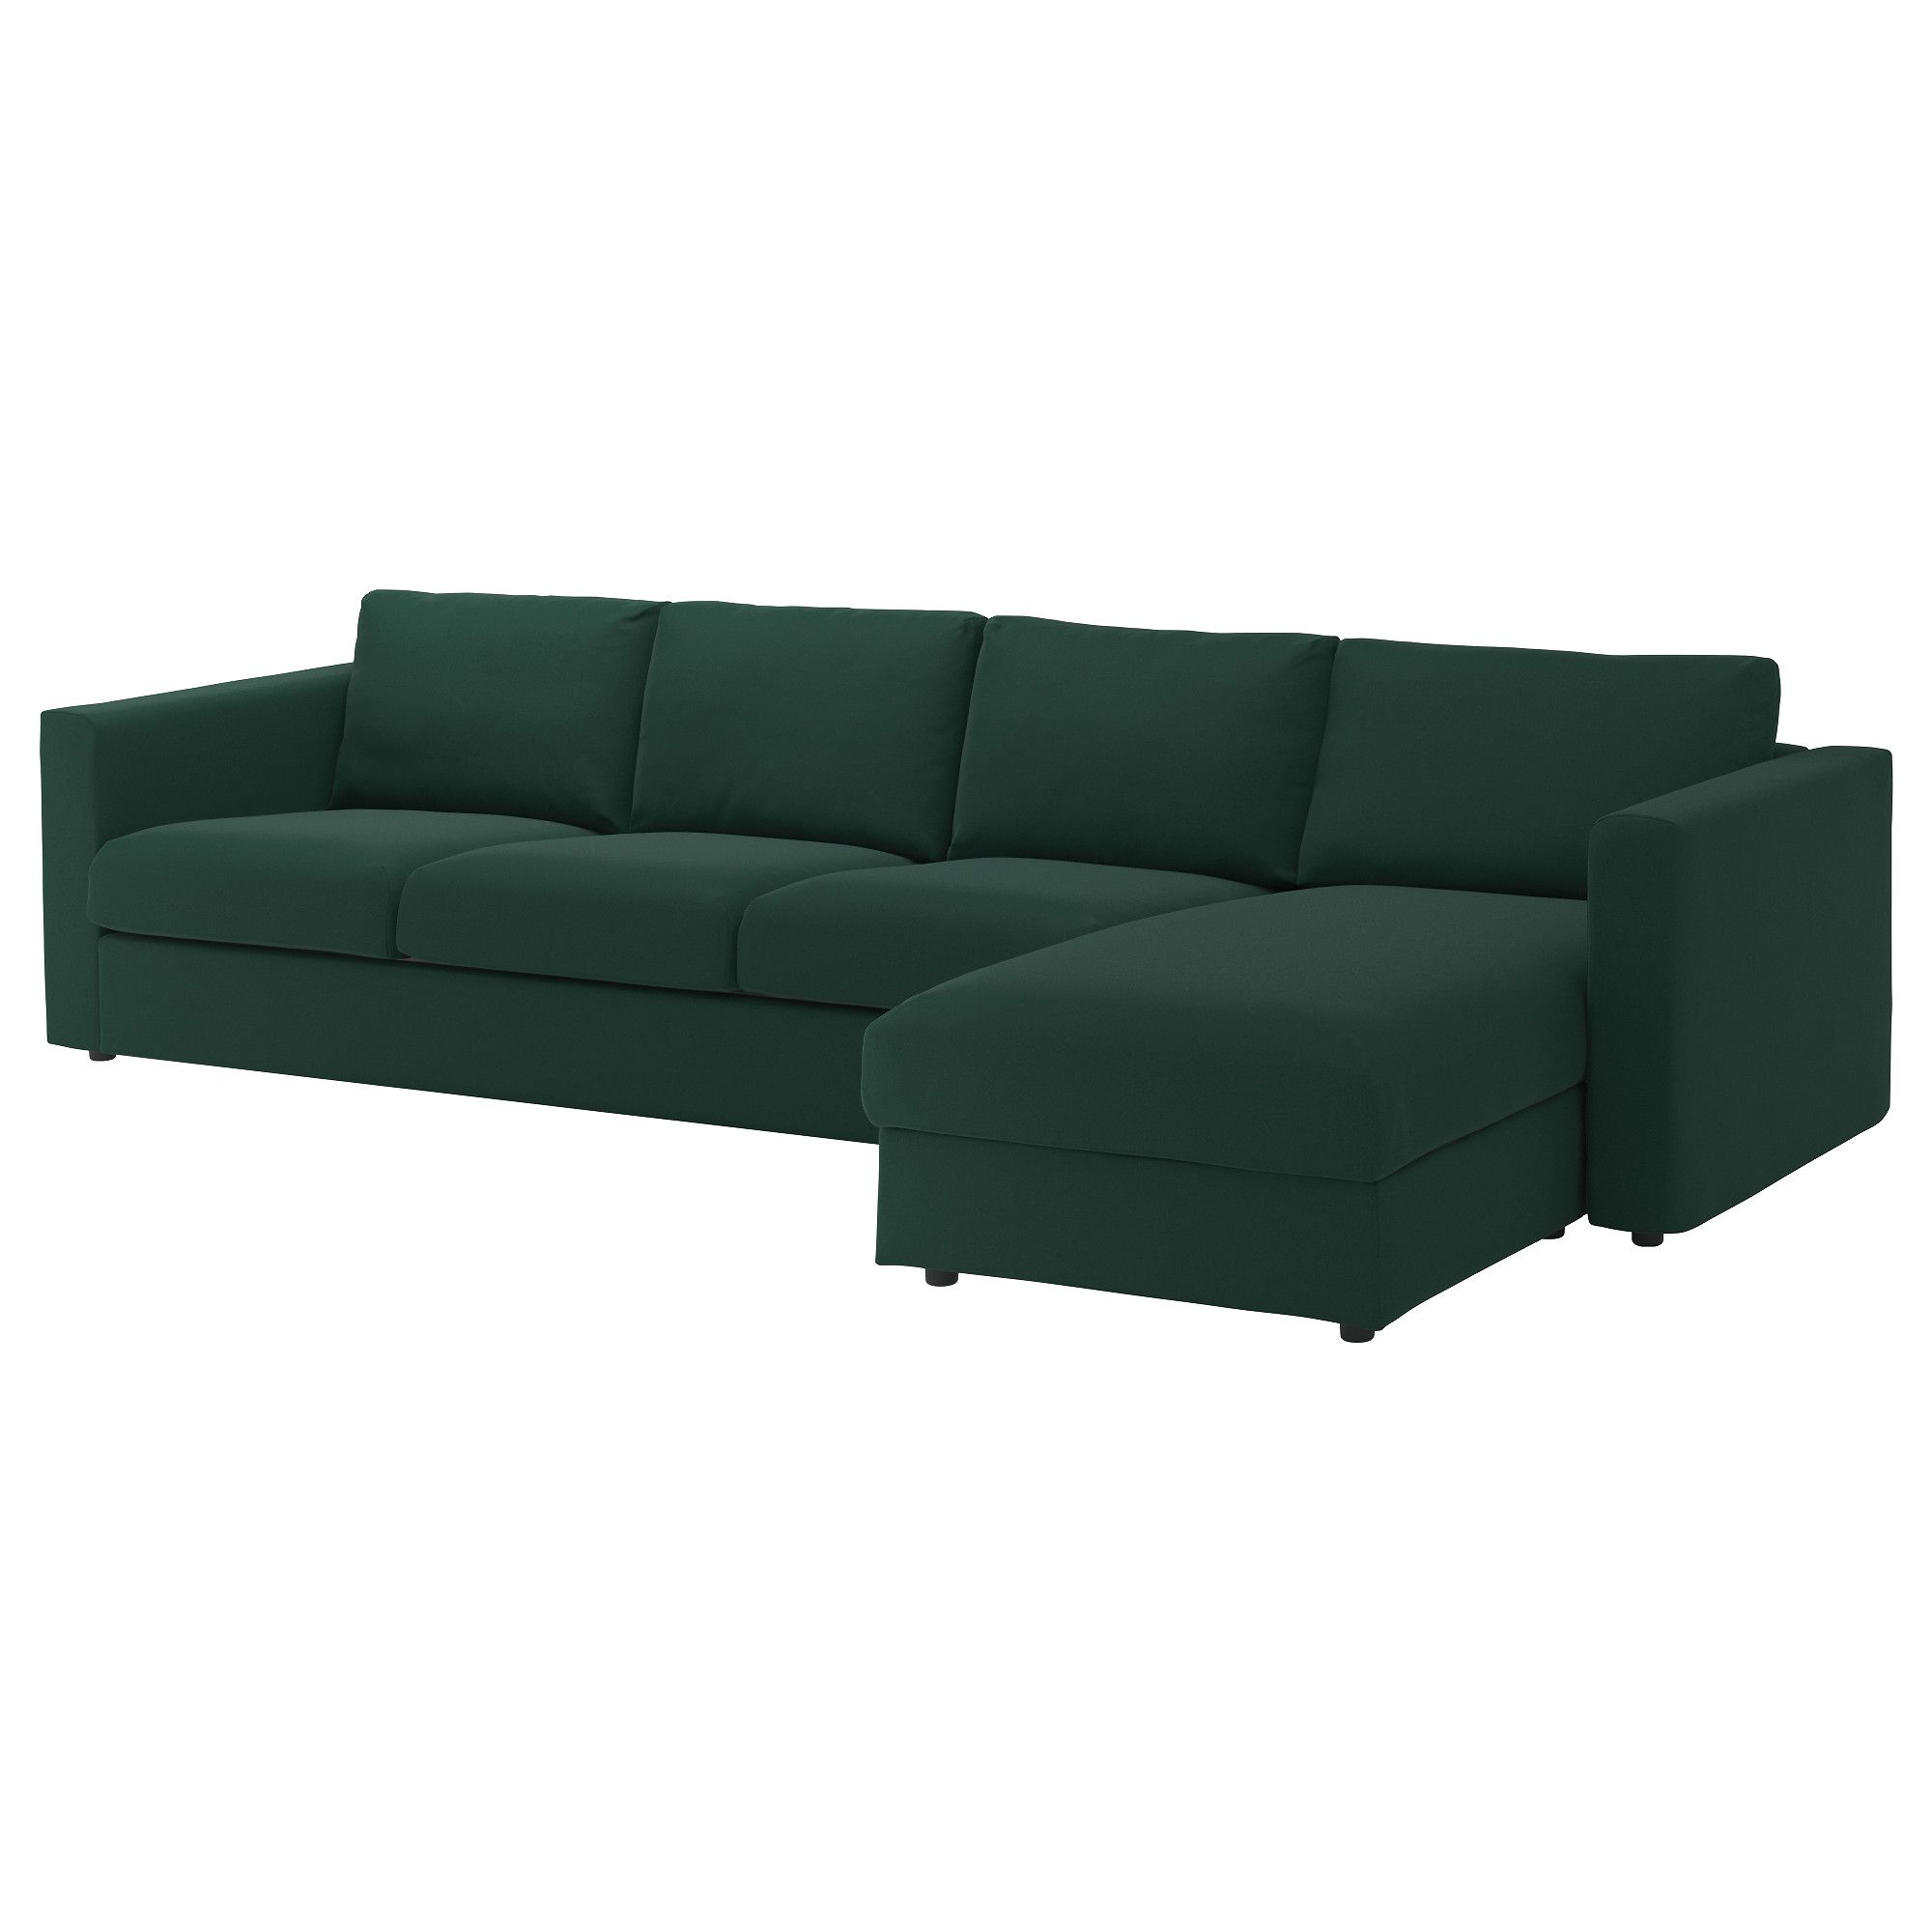 4er Sofa Vimle Mit Recamiere Gunnared Dunkelgrun In 2019 Products